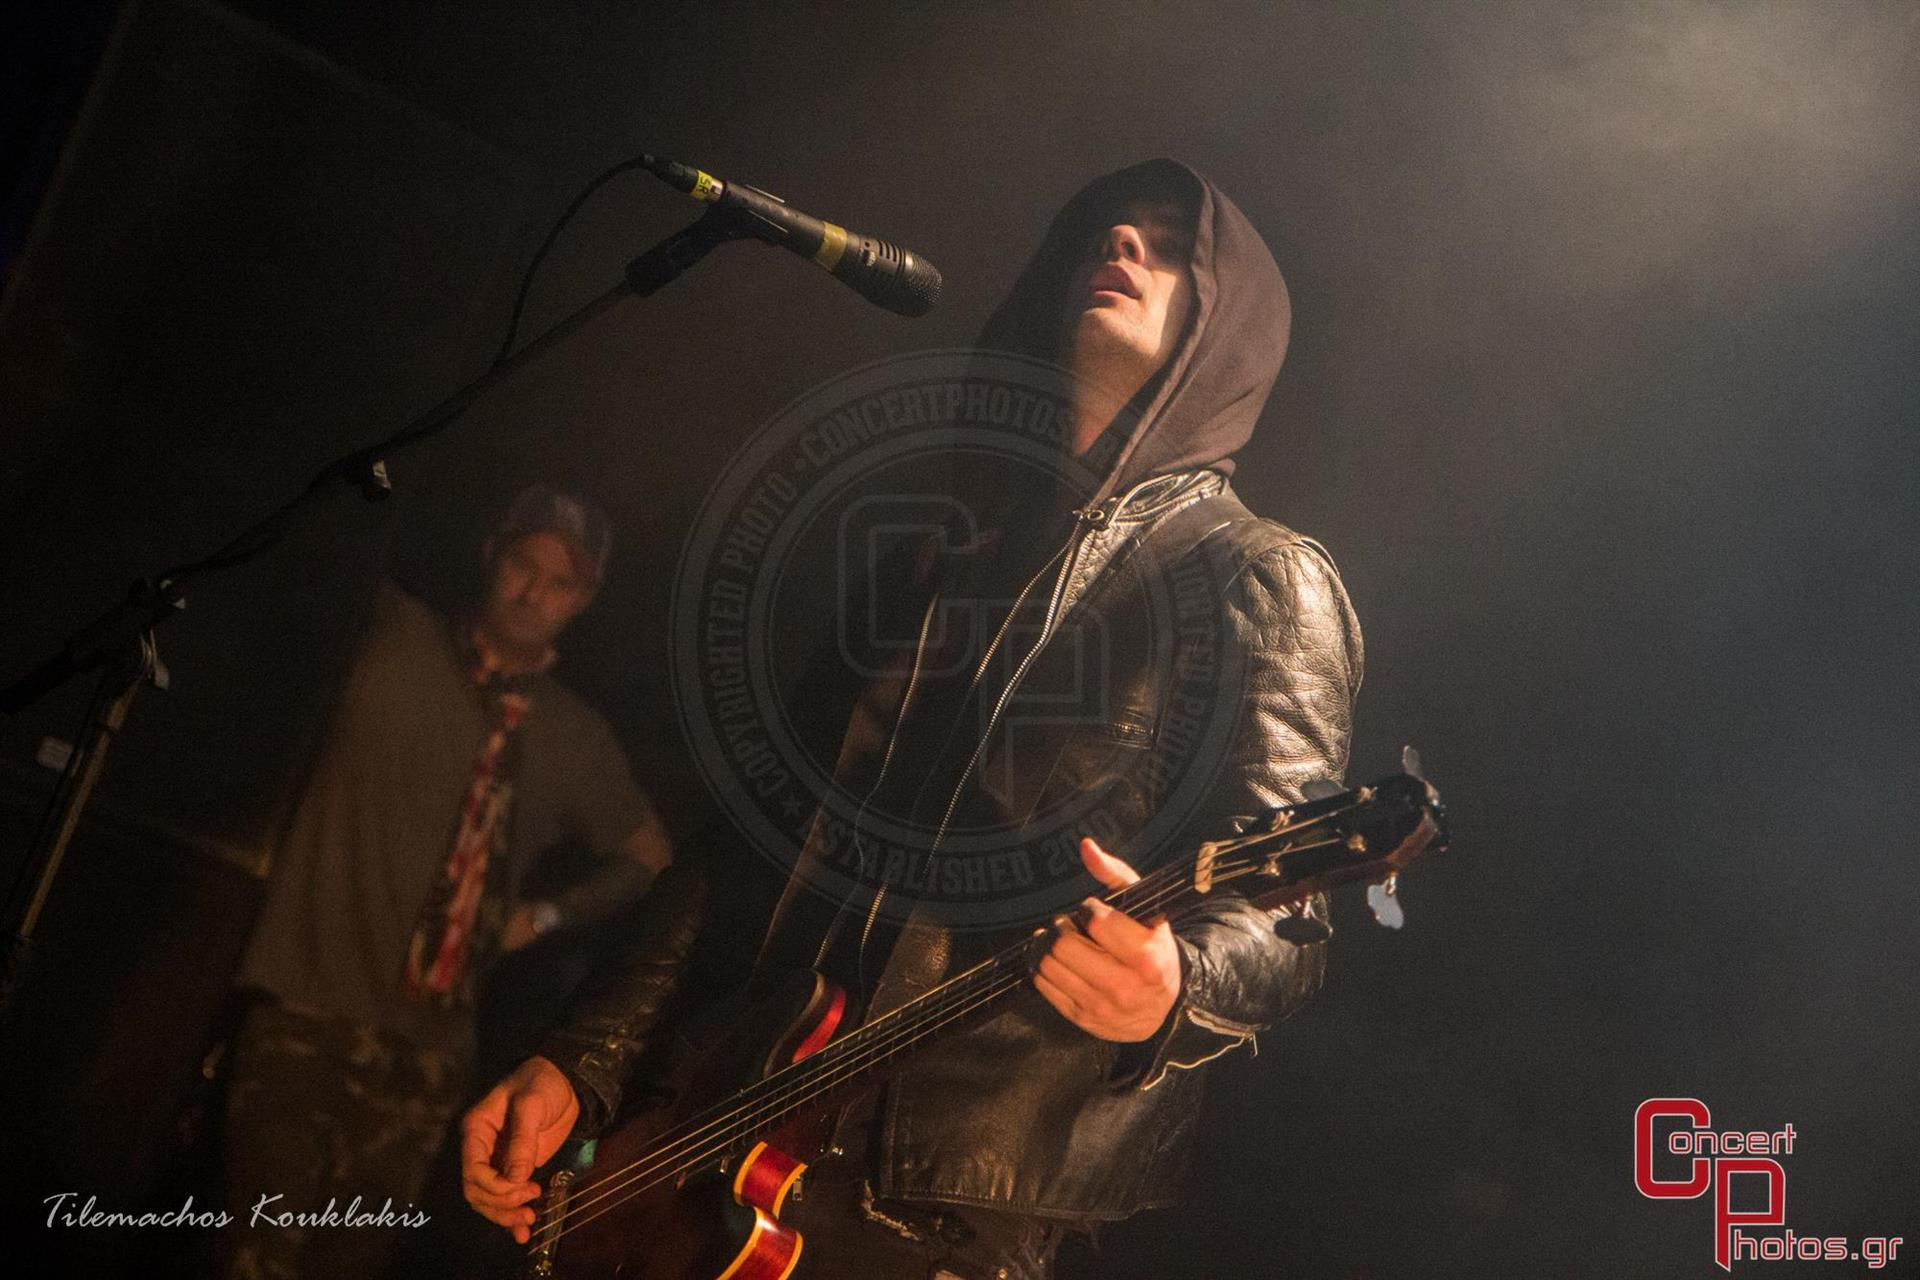 Black Rebel Motorcycle Club-Black Rebel Motorcyclw Club Acro photographer:  - IMG_6116